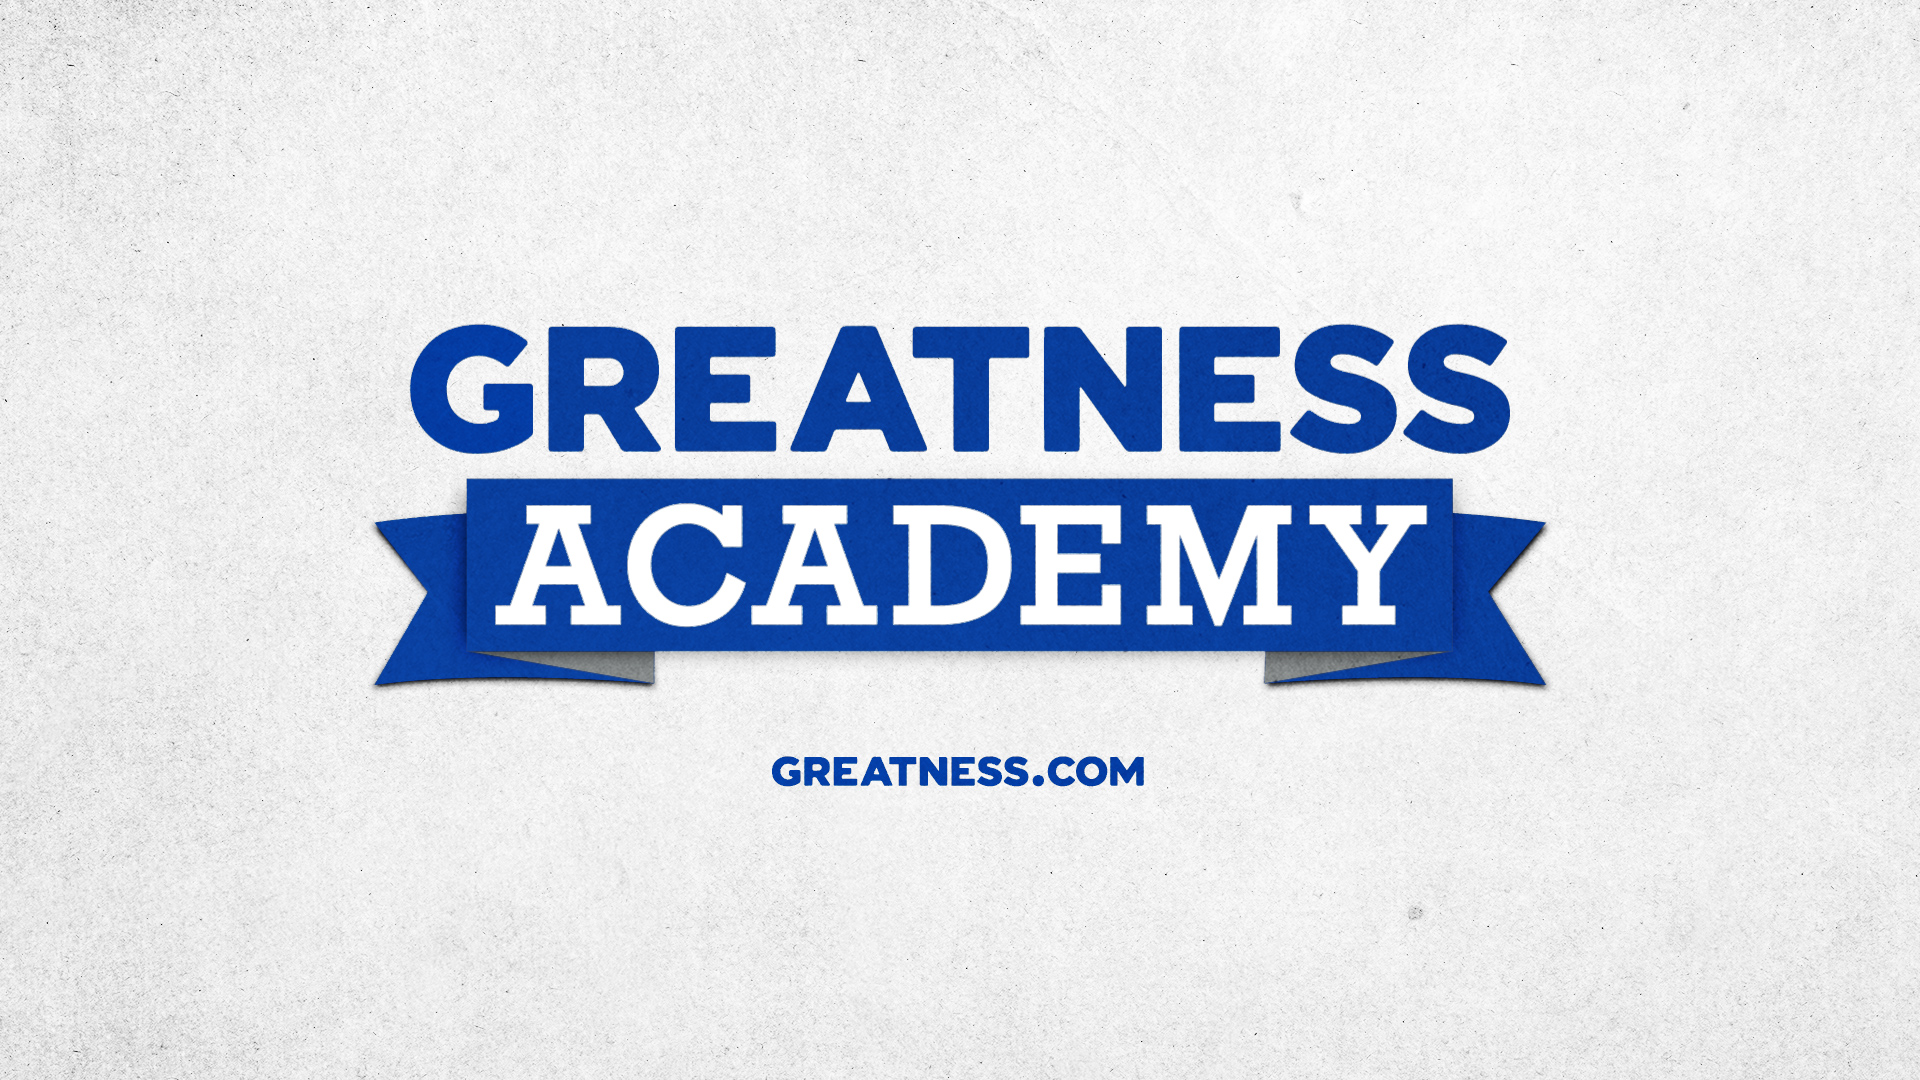 Greatness Academy_Landing Page Video_V2